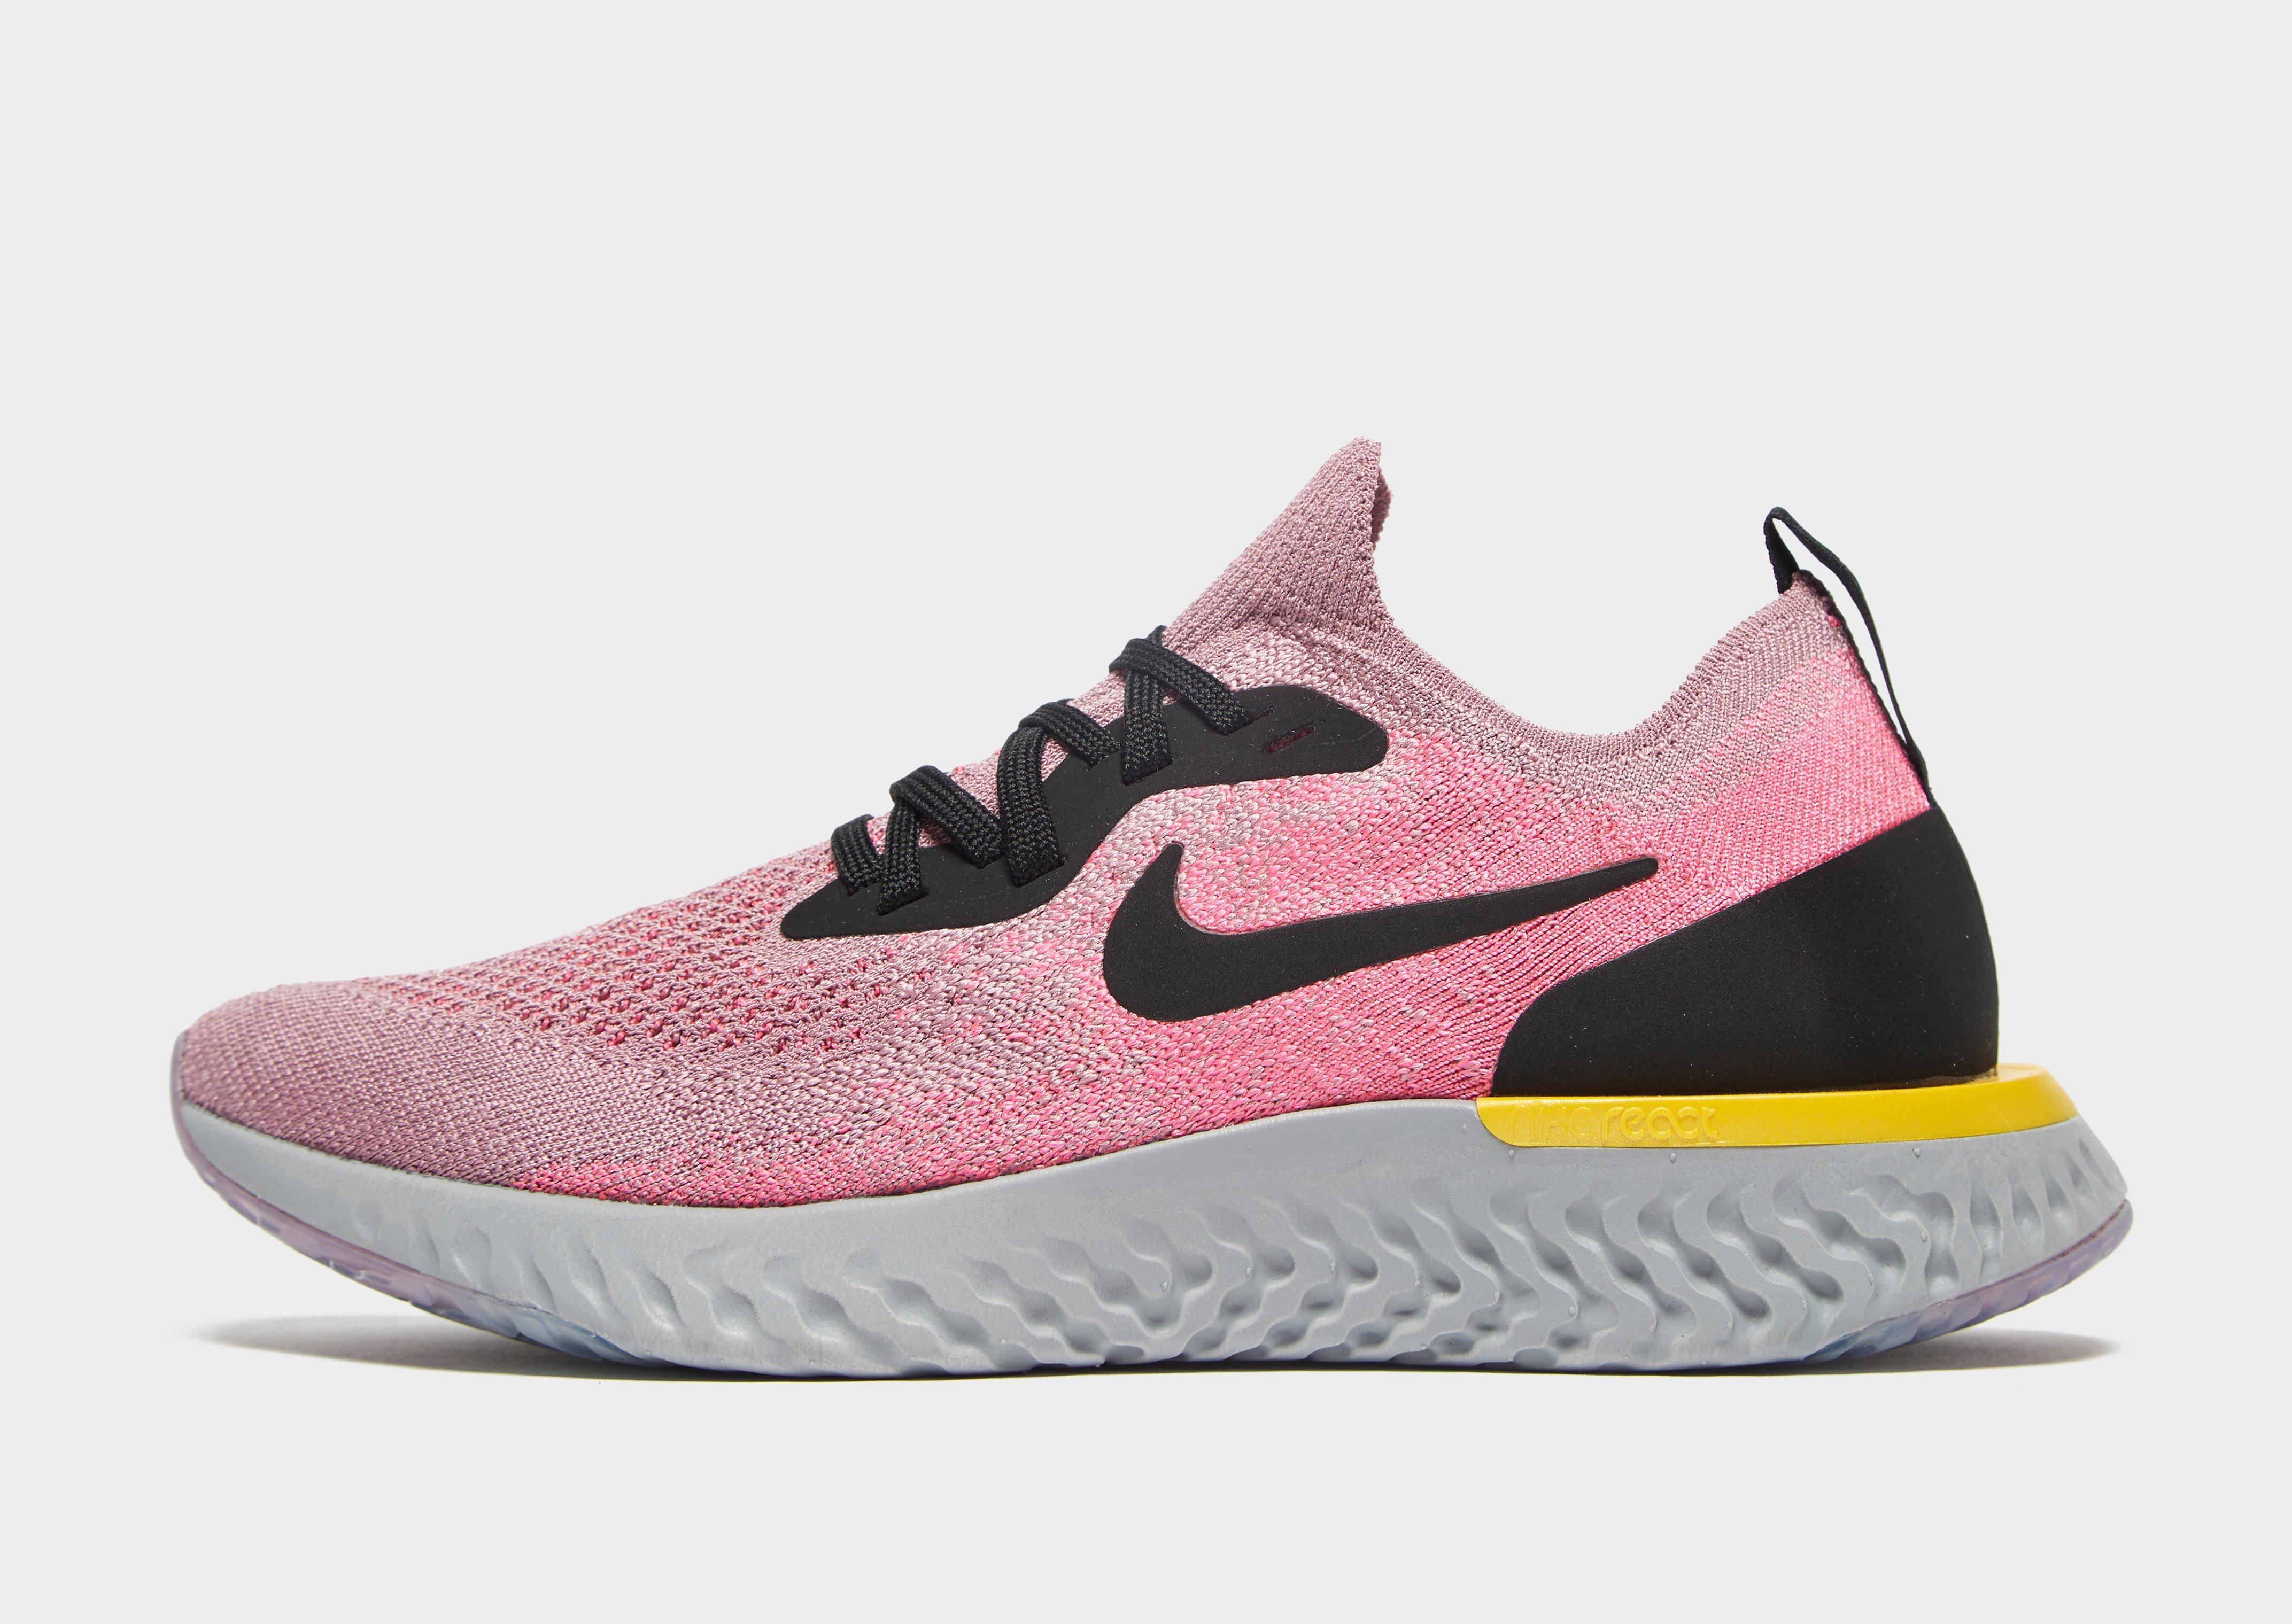 Nike Epic React Flyknit in Pink - Lyst 77bff019238c